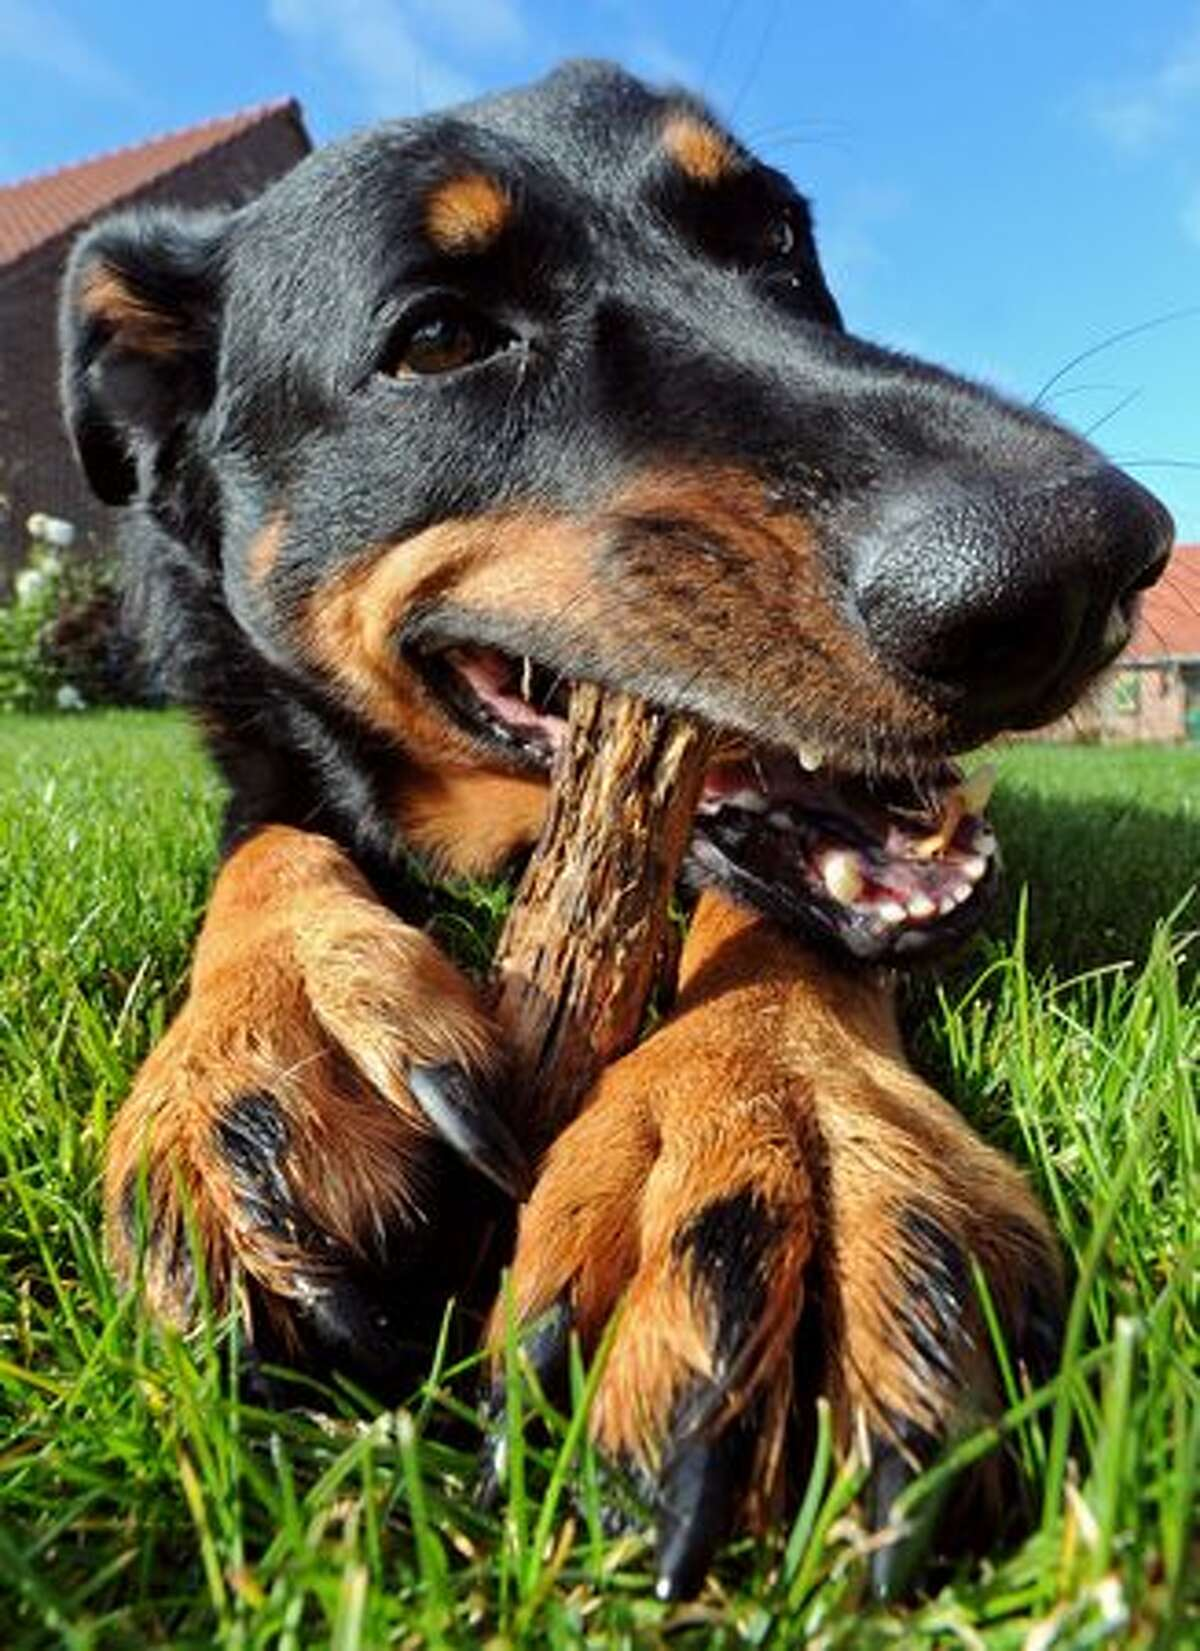 A Beauce shepherd dog plays with a wooden stick in Godewaersvelde, northern France.